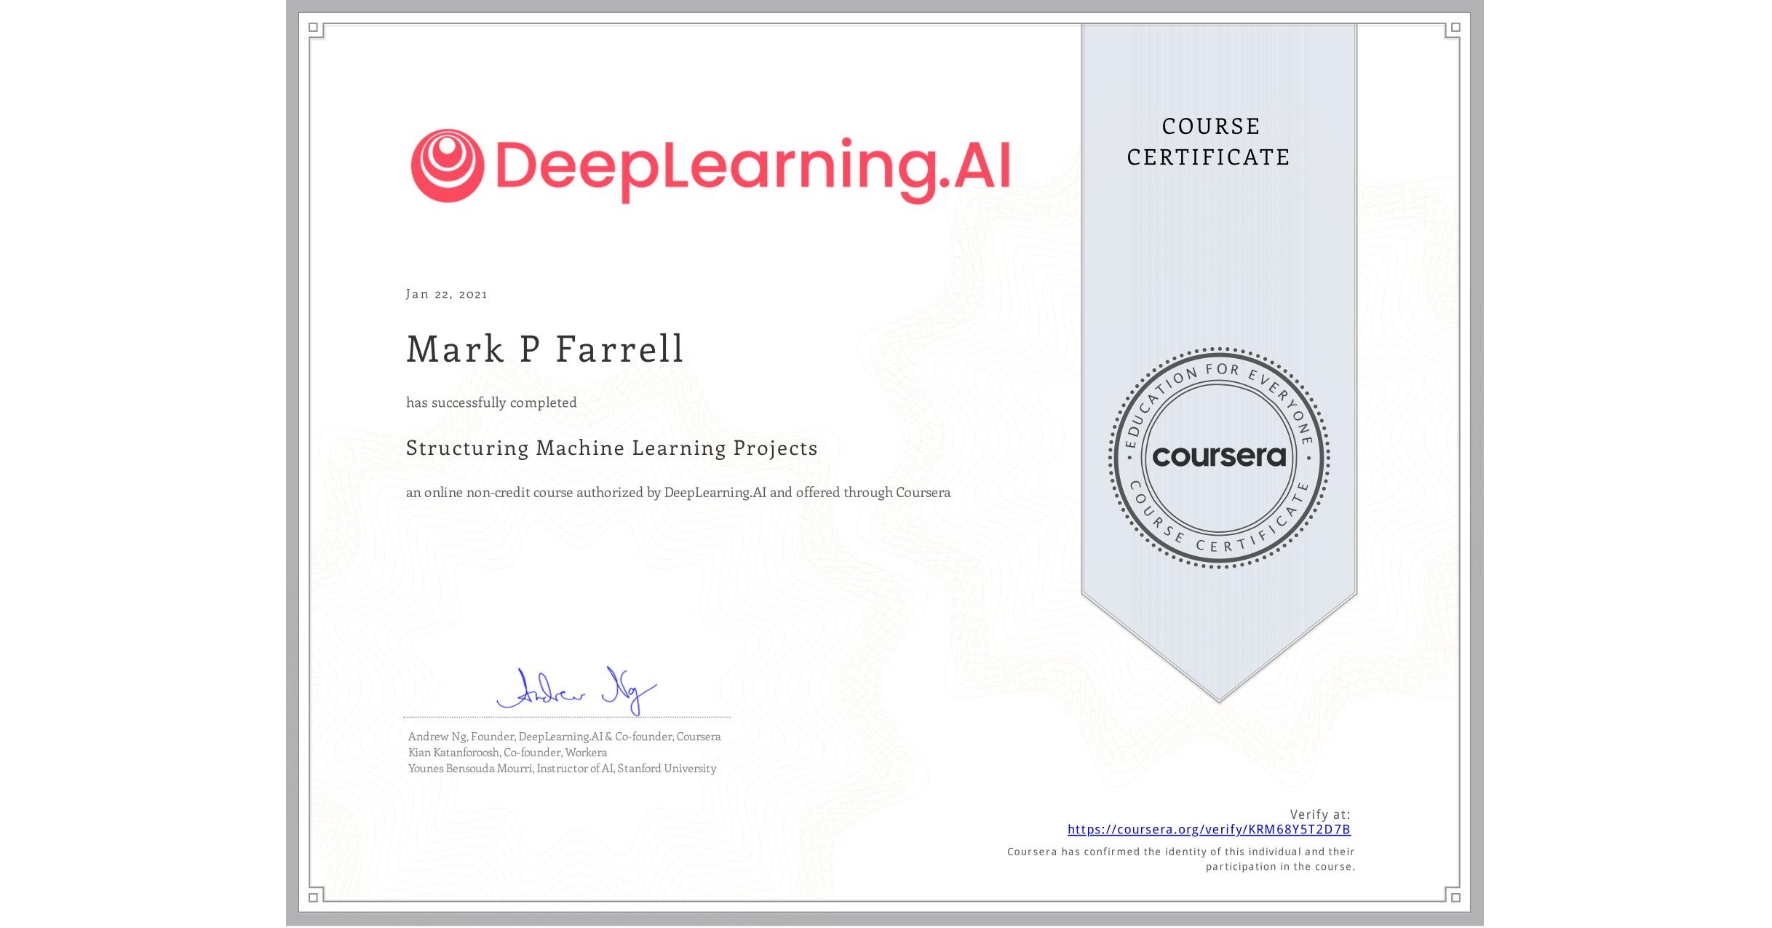 View certificate for Mark P Farrell, Structuring Machine Learning Projects, an online non-credit course authorized by DeepLearning.AI and offered through Coursera